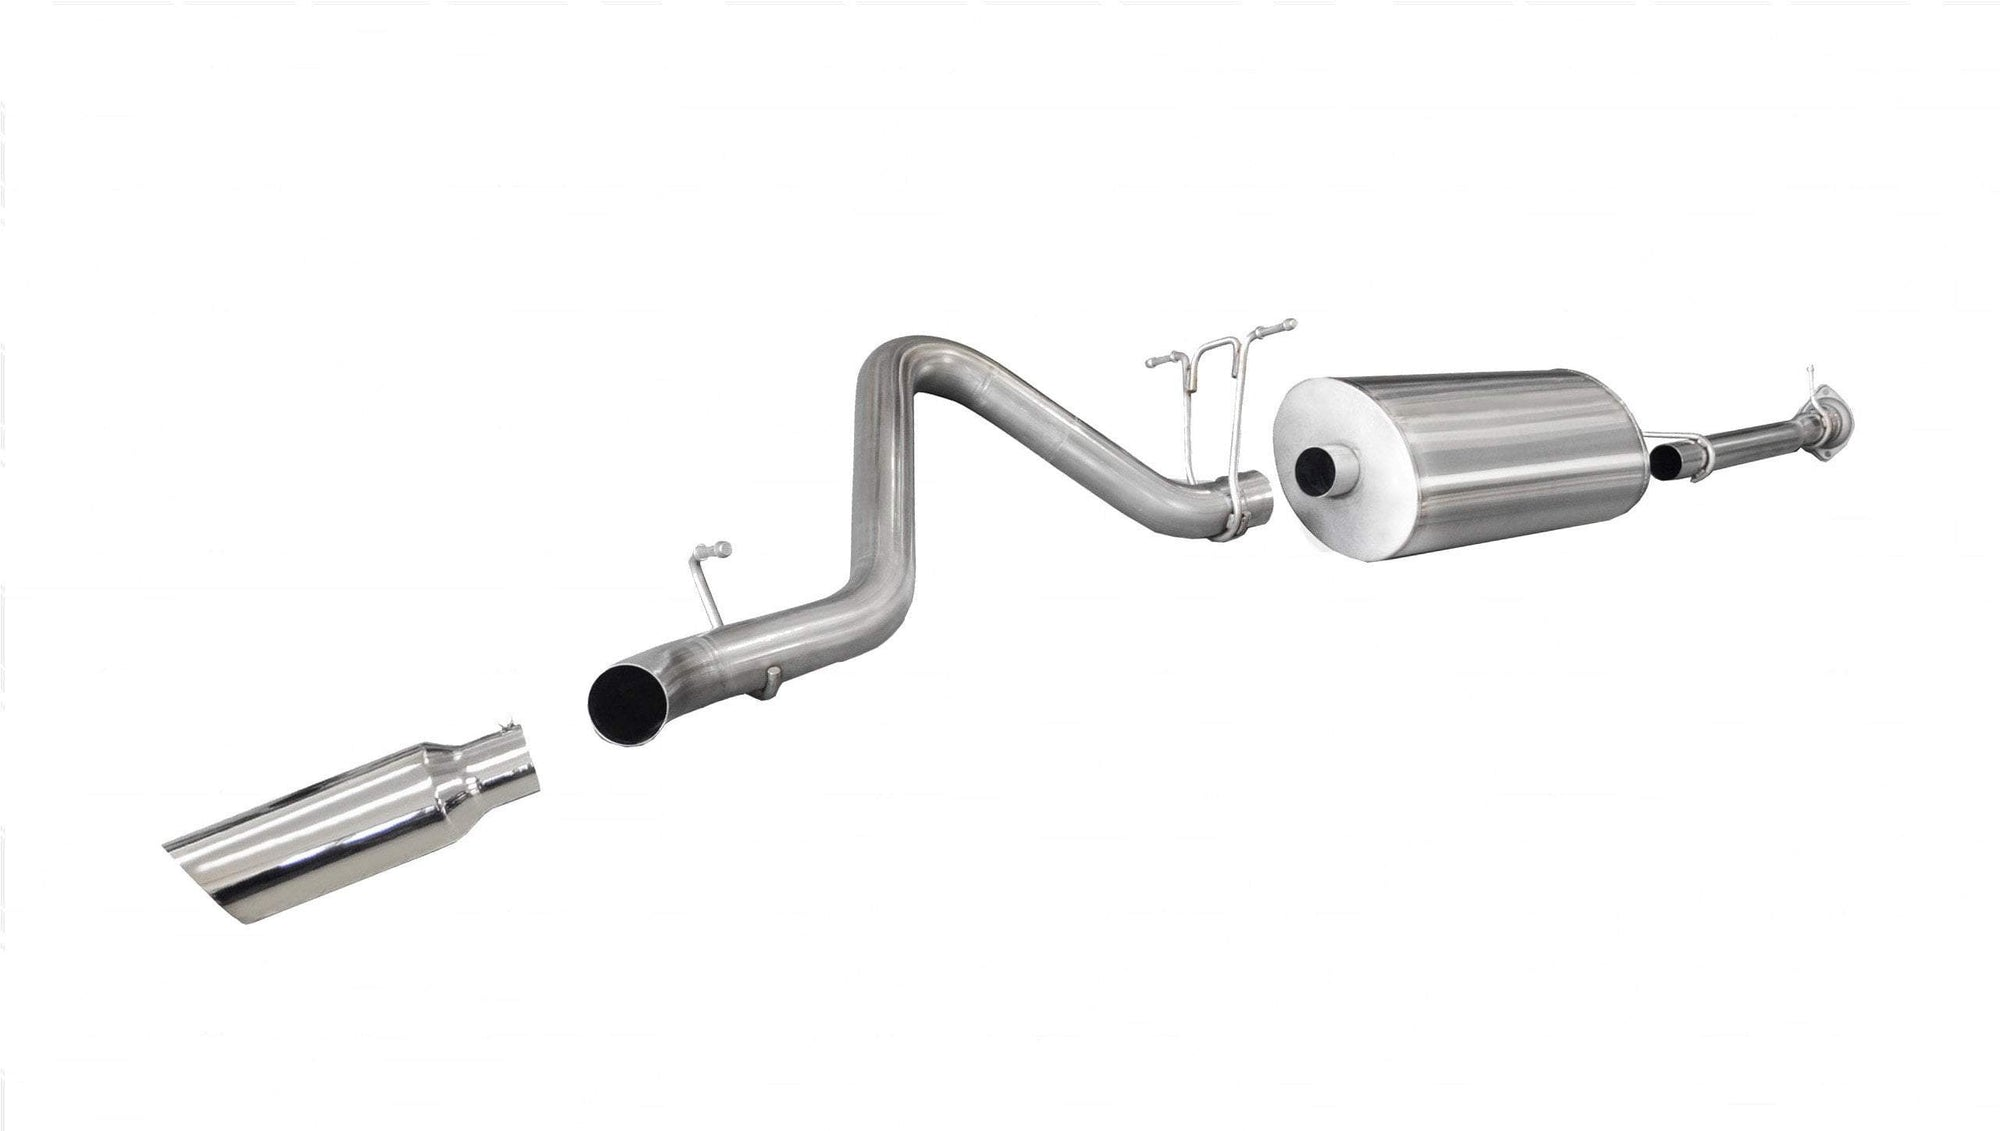 "dB Cat-Back Exhaust Polished / Sport / Single Side - Single 4in 2011-2014 Chevrolet Silverado, GMC Sierra, 2500HD, 3.0"" Catback Exhaust System with 4.0"" Tip (24794) Sport Sound Level"